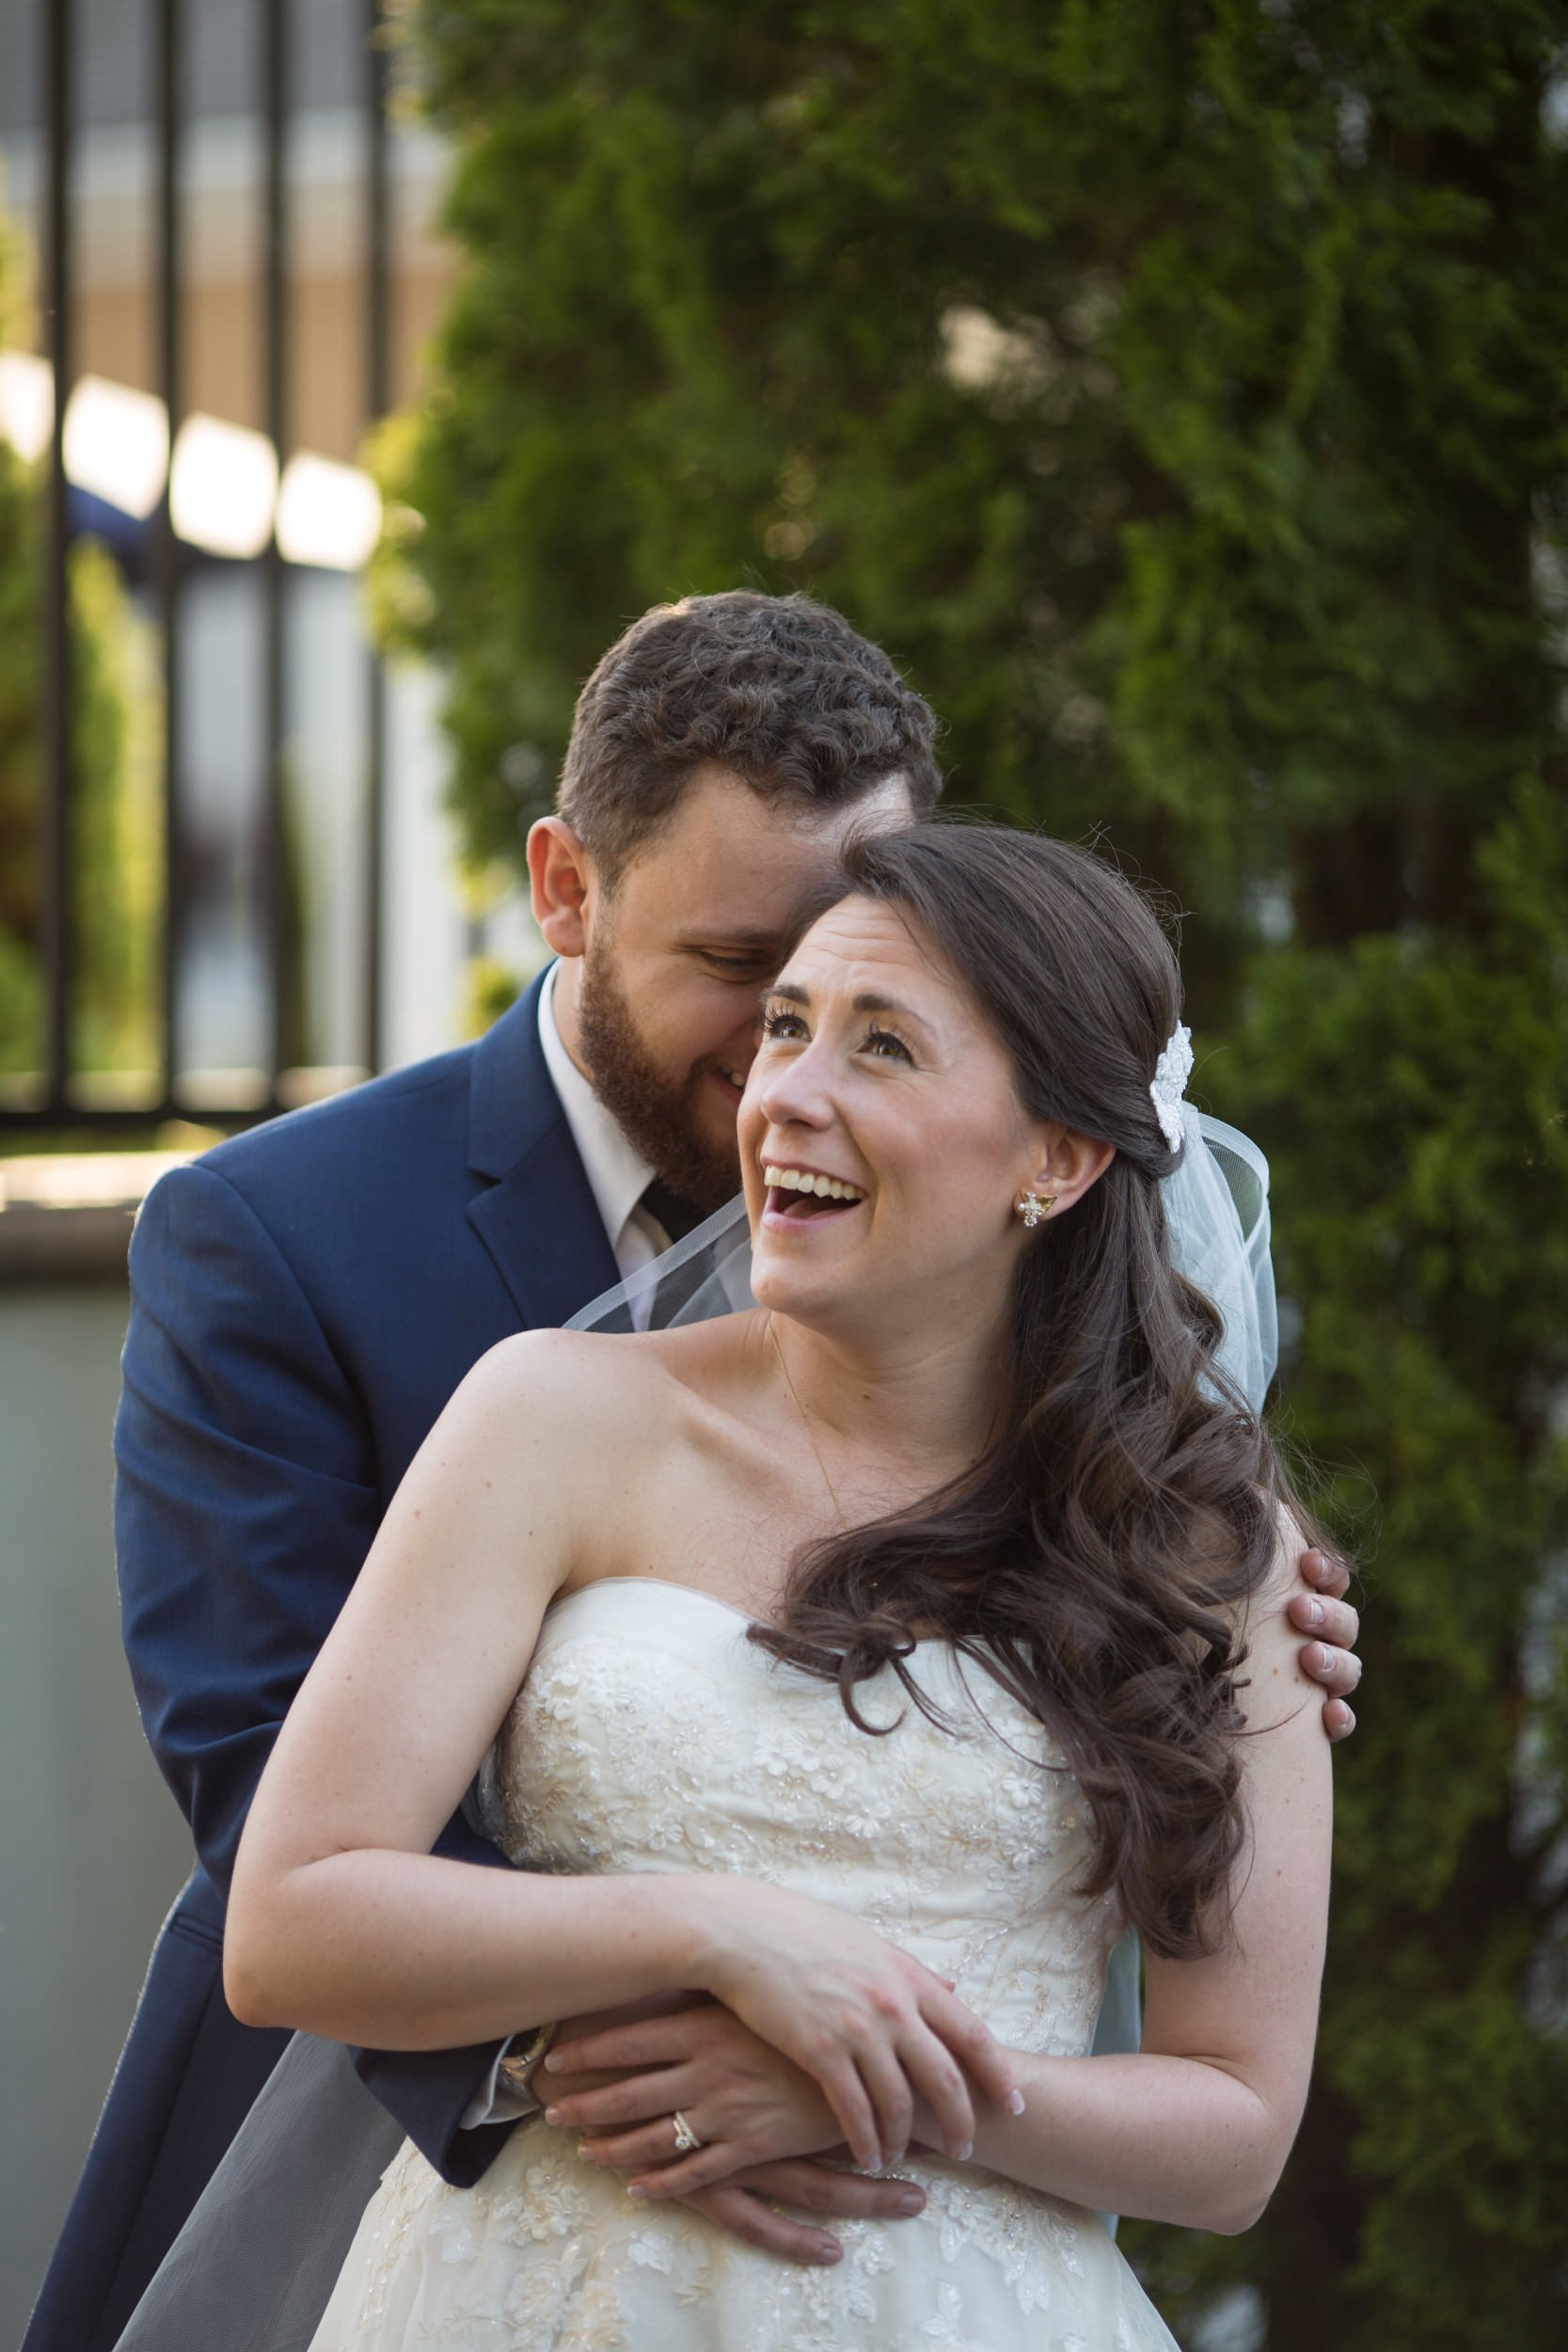 Wedding portraits at Mendenhall Inn in Media